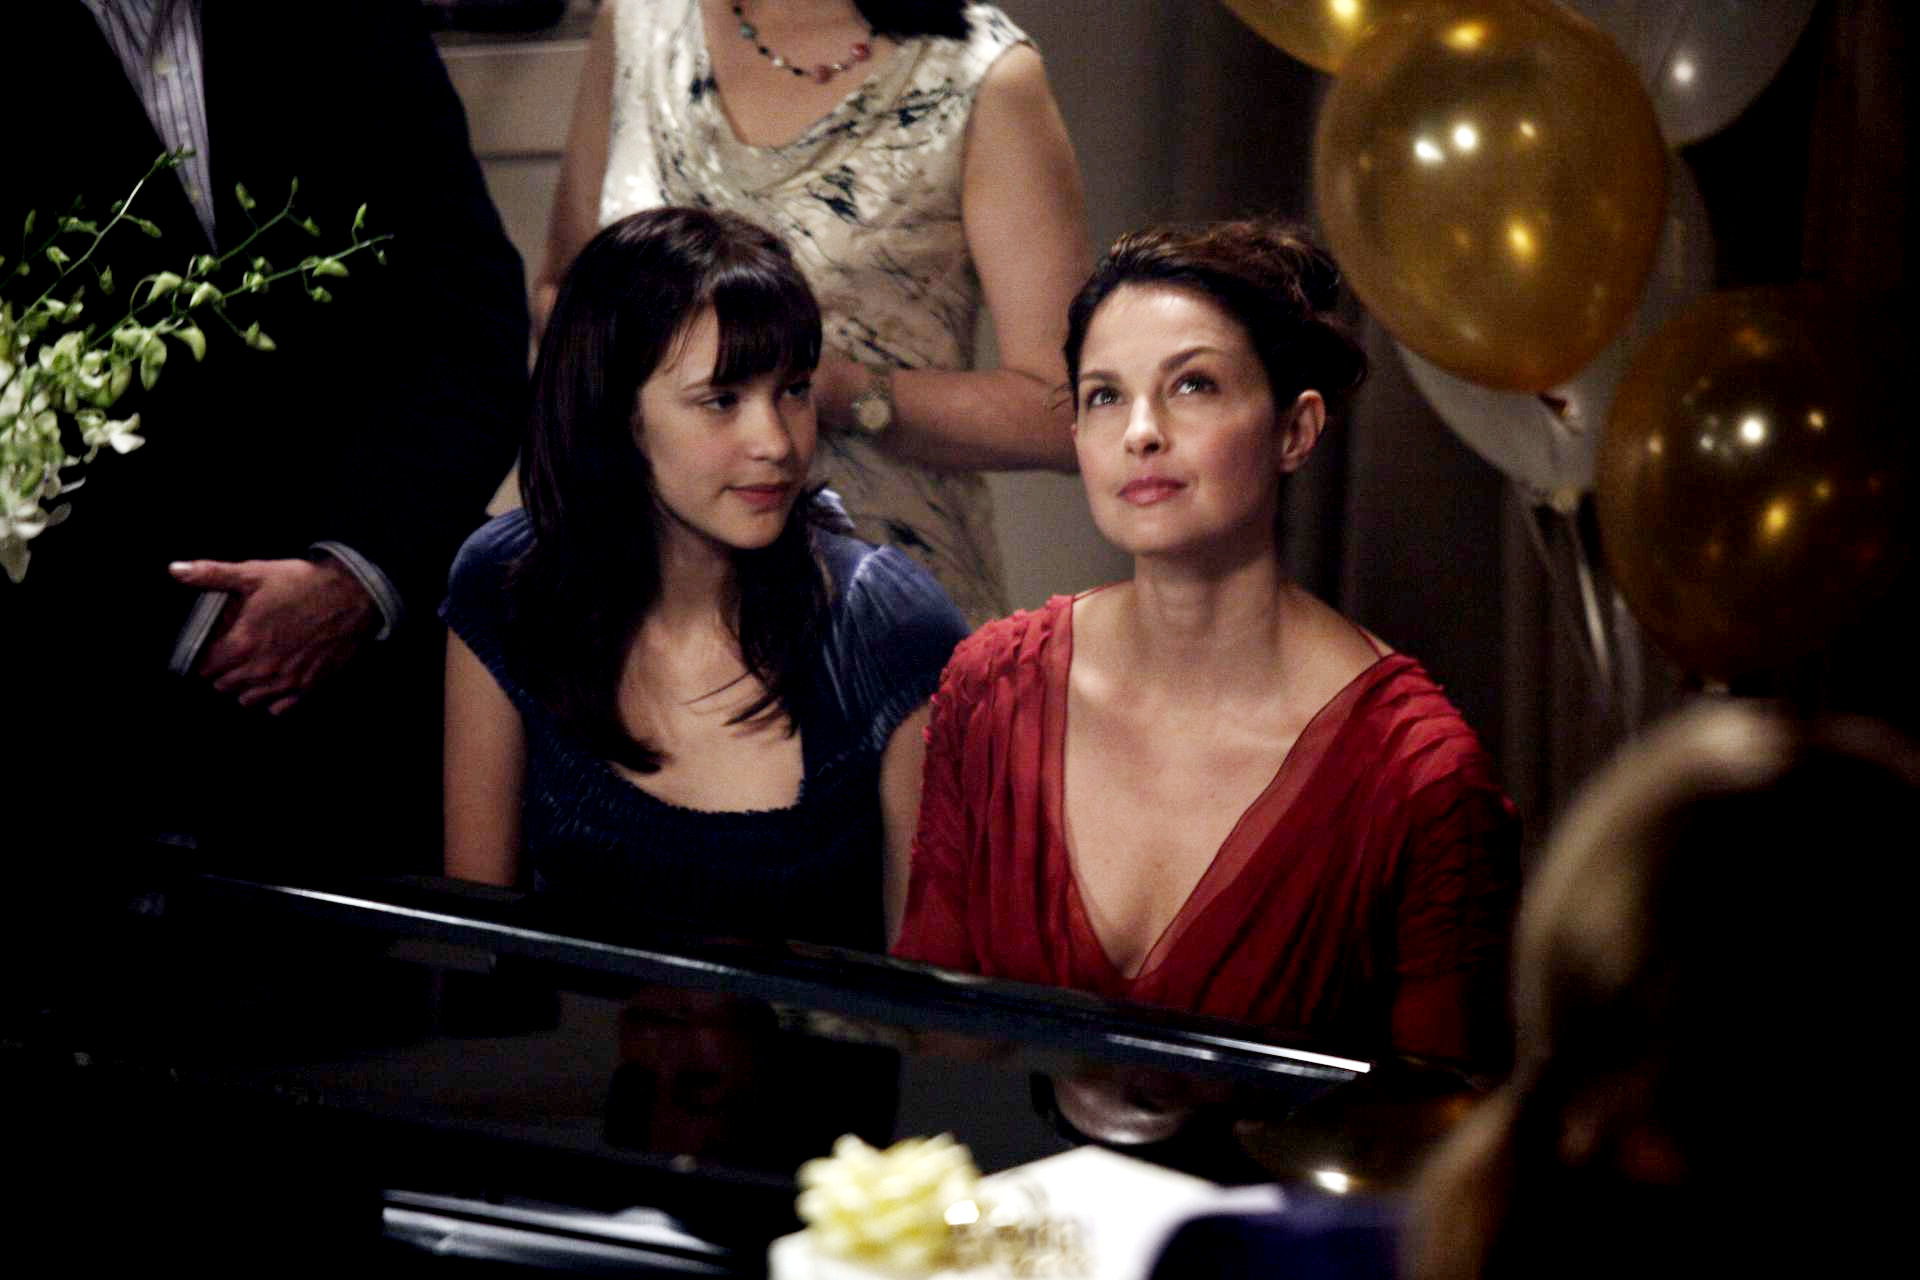 Alexia Fast stars as Julie and Ashley Judd stars as Helen in E1 Entertainment's Helen (2010)